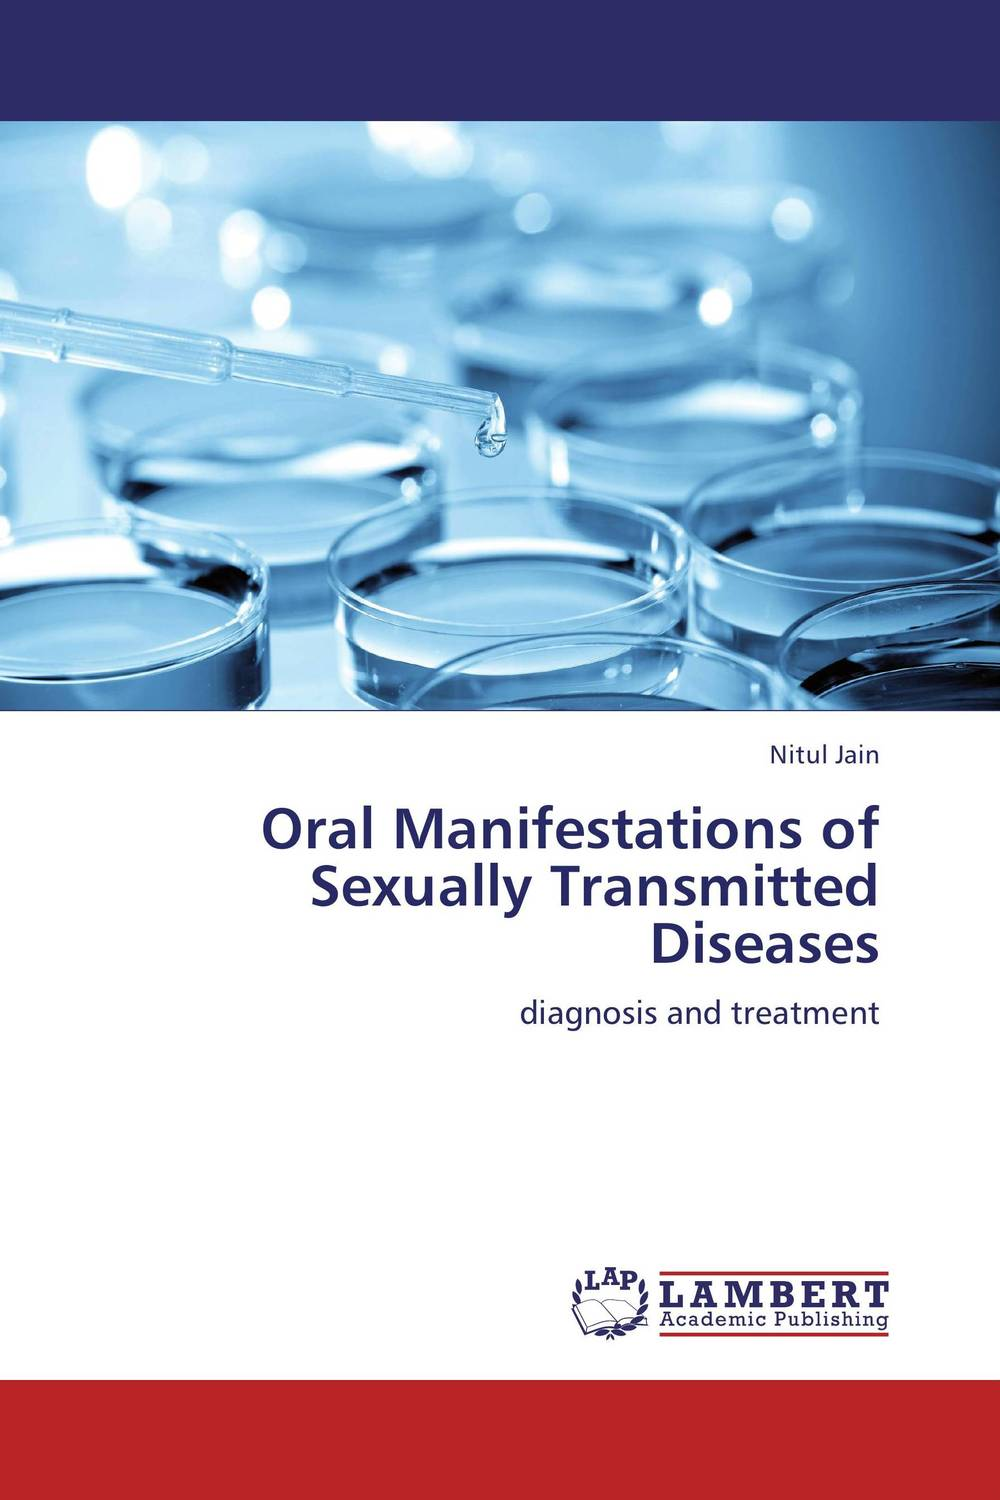 Oral Manifestations of Sexually Transmitted Diseases